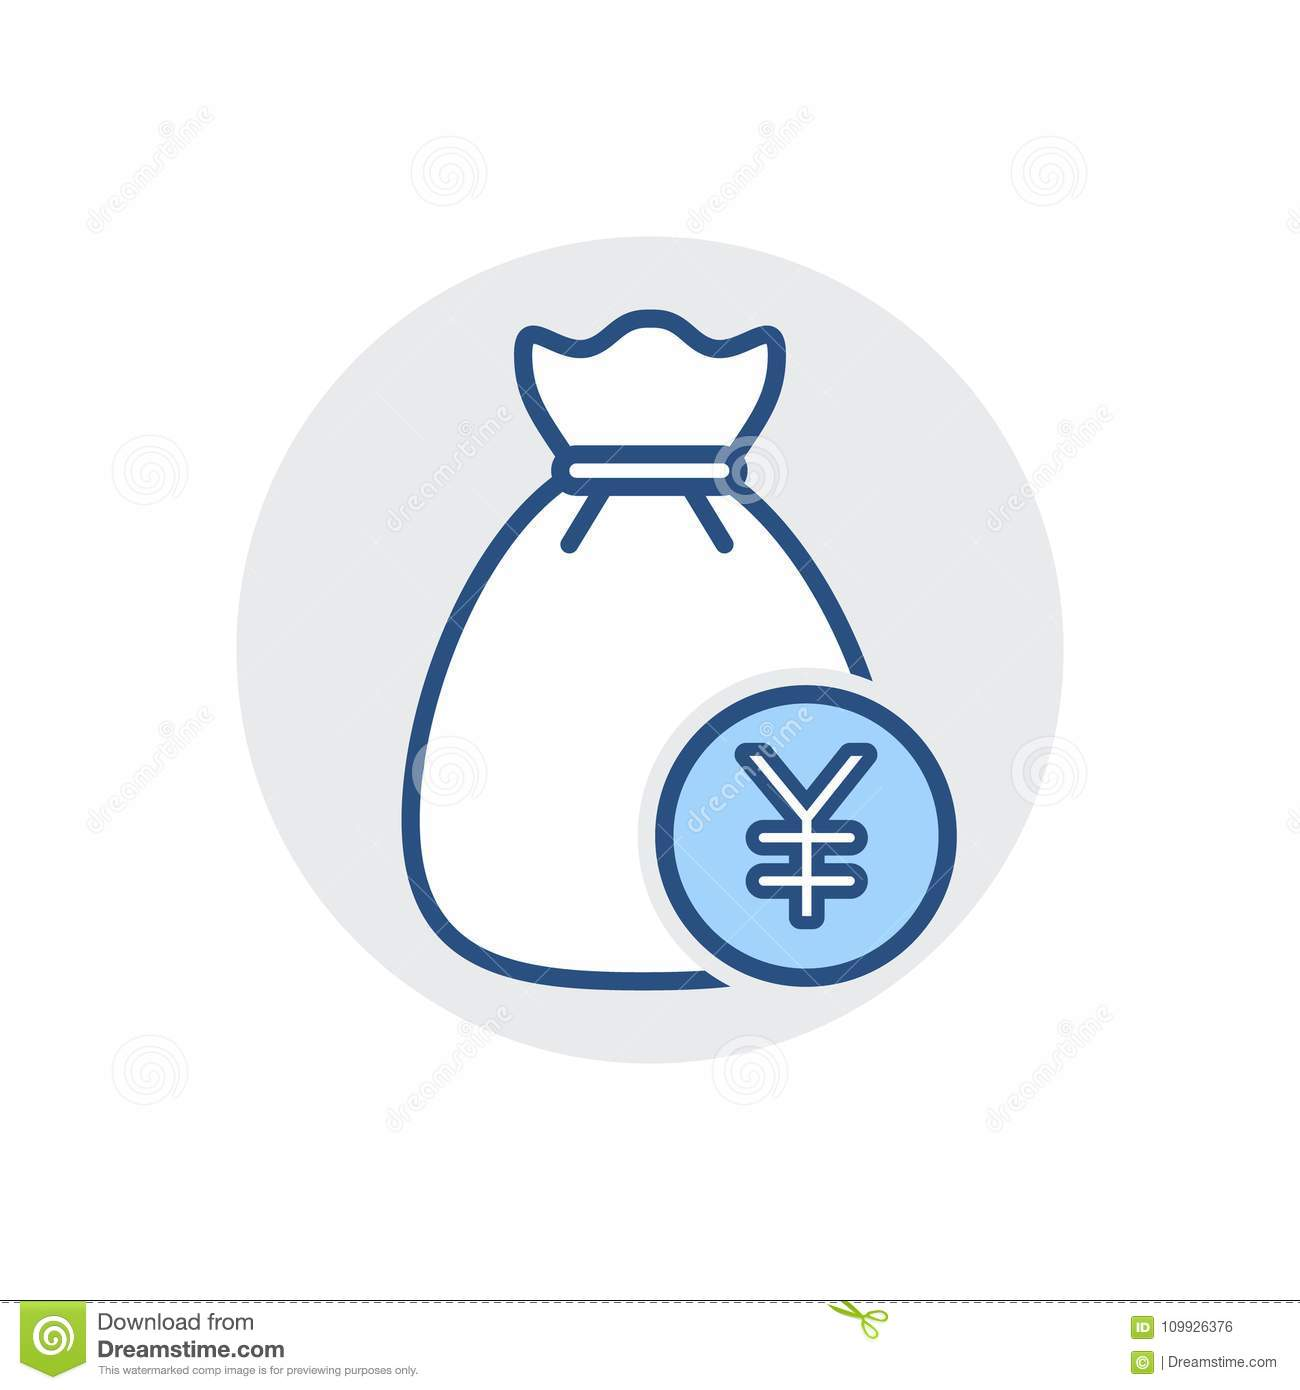 Money Bag Icon. Bank Cash, Finance, Fund, Tax Icon Stock Vector